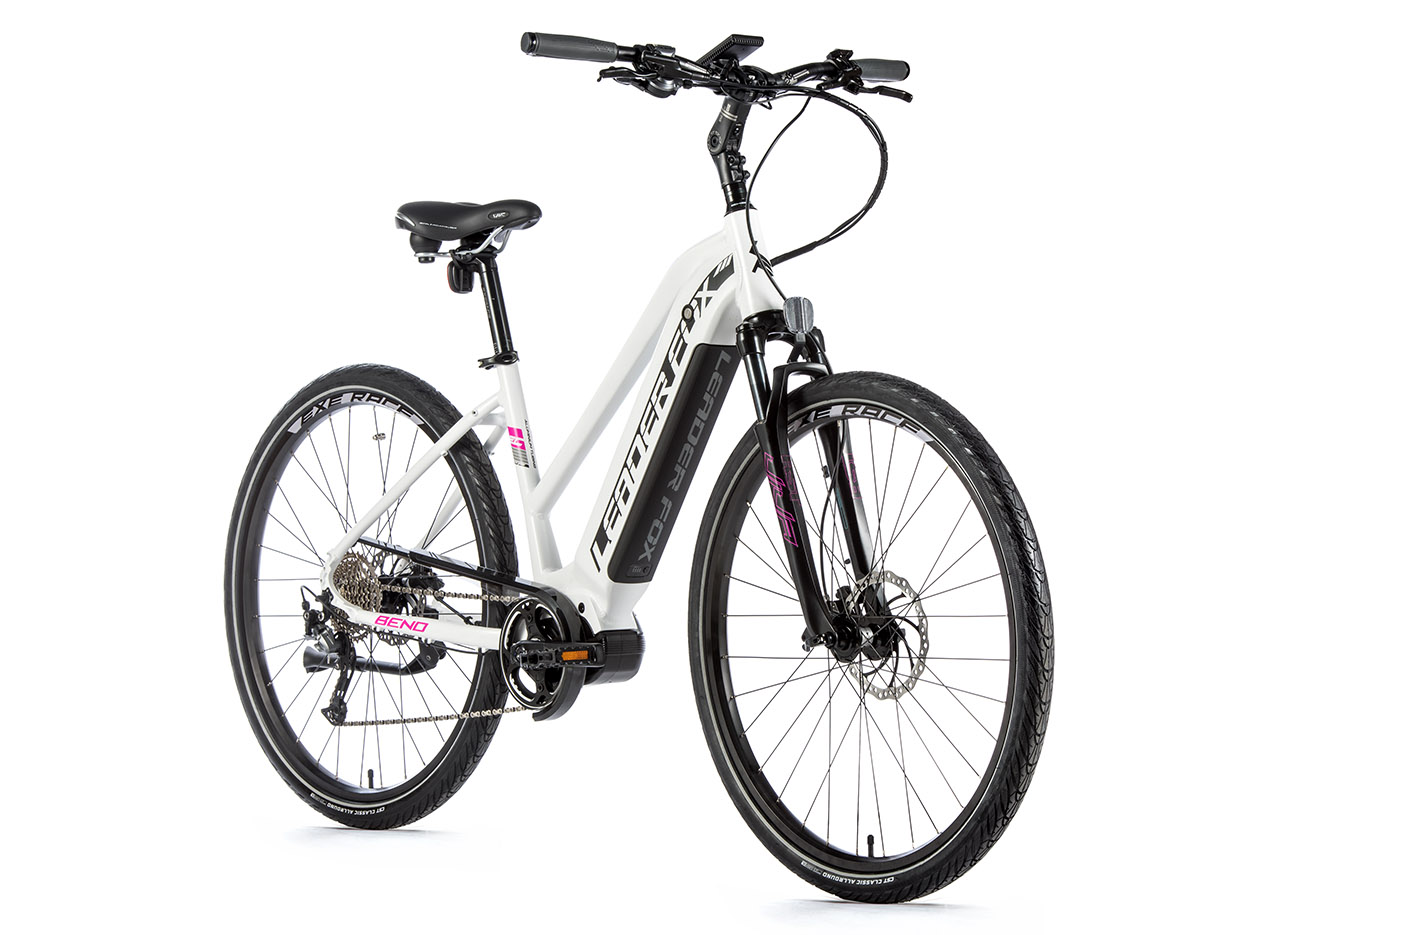 Bicicleta electrica City Leader Fox Bend Lady, 2020